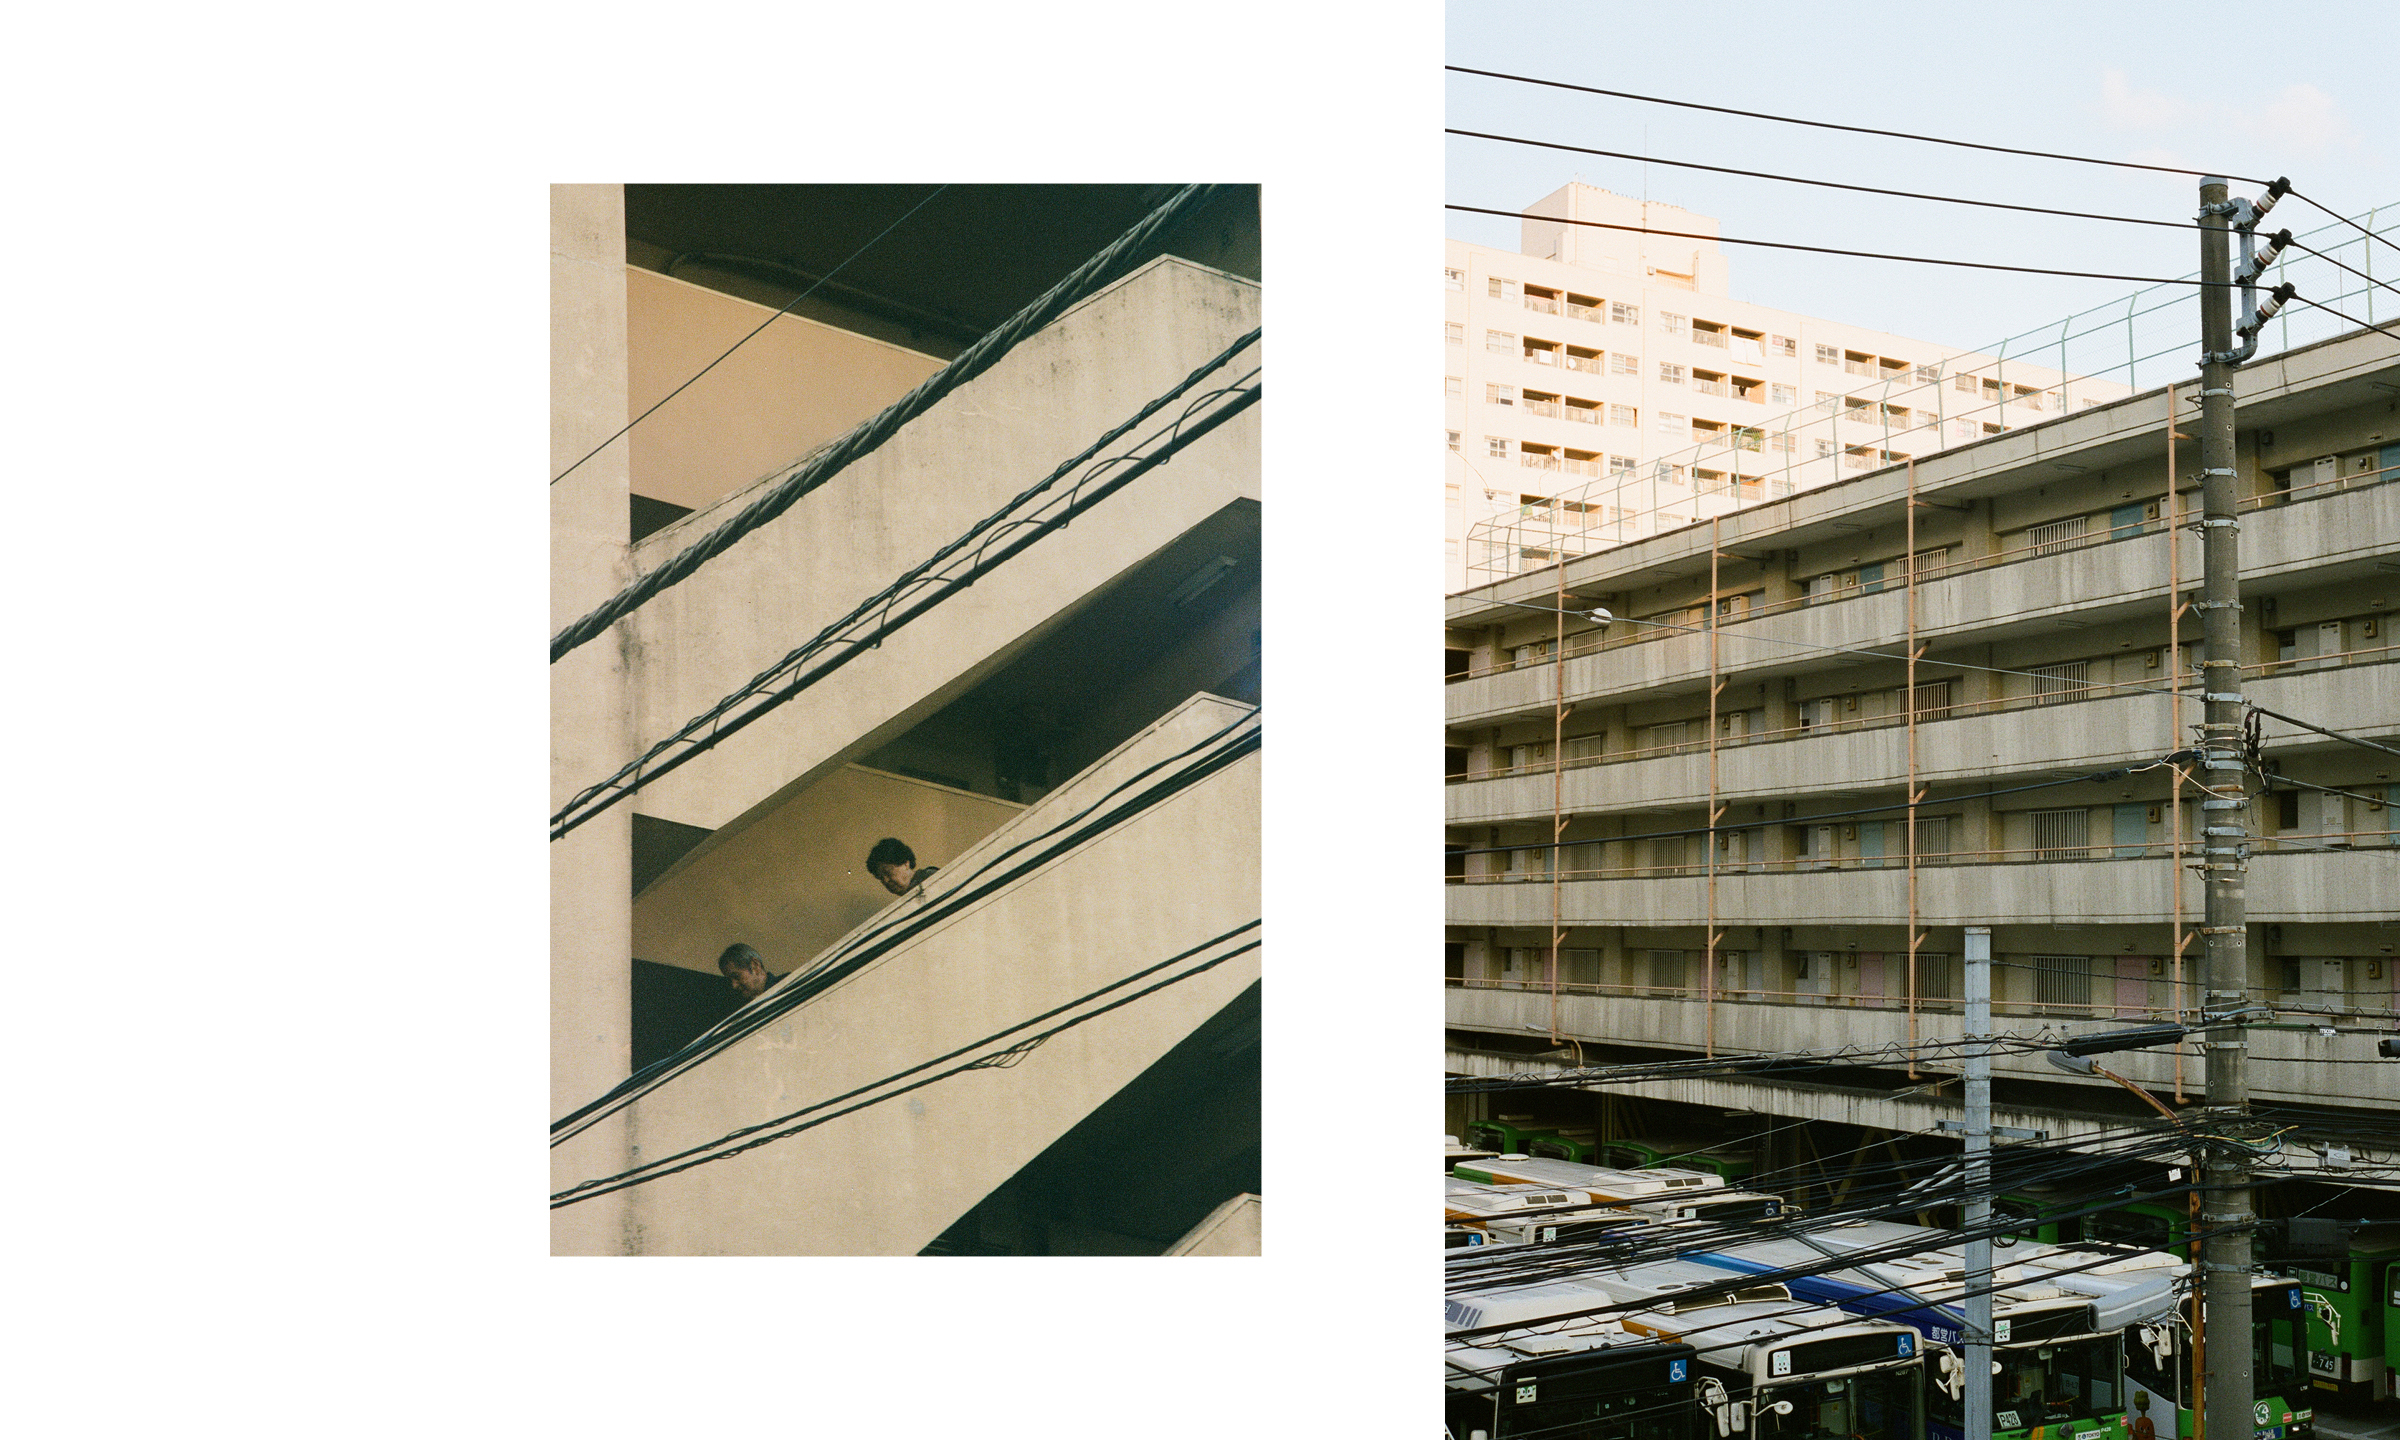 Tokyo_Photography_Case_Study_Layout20.jpg